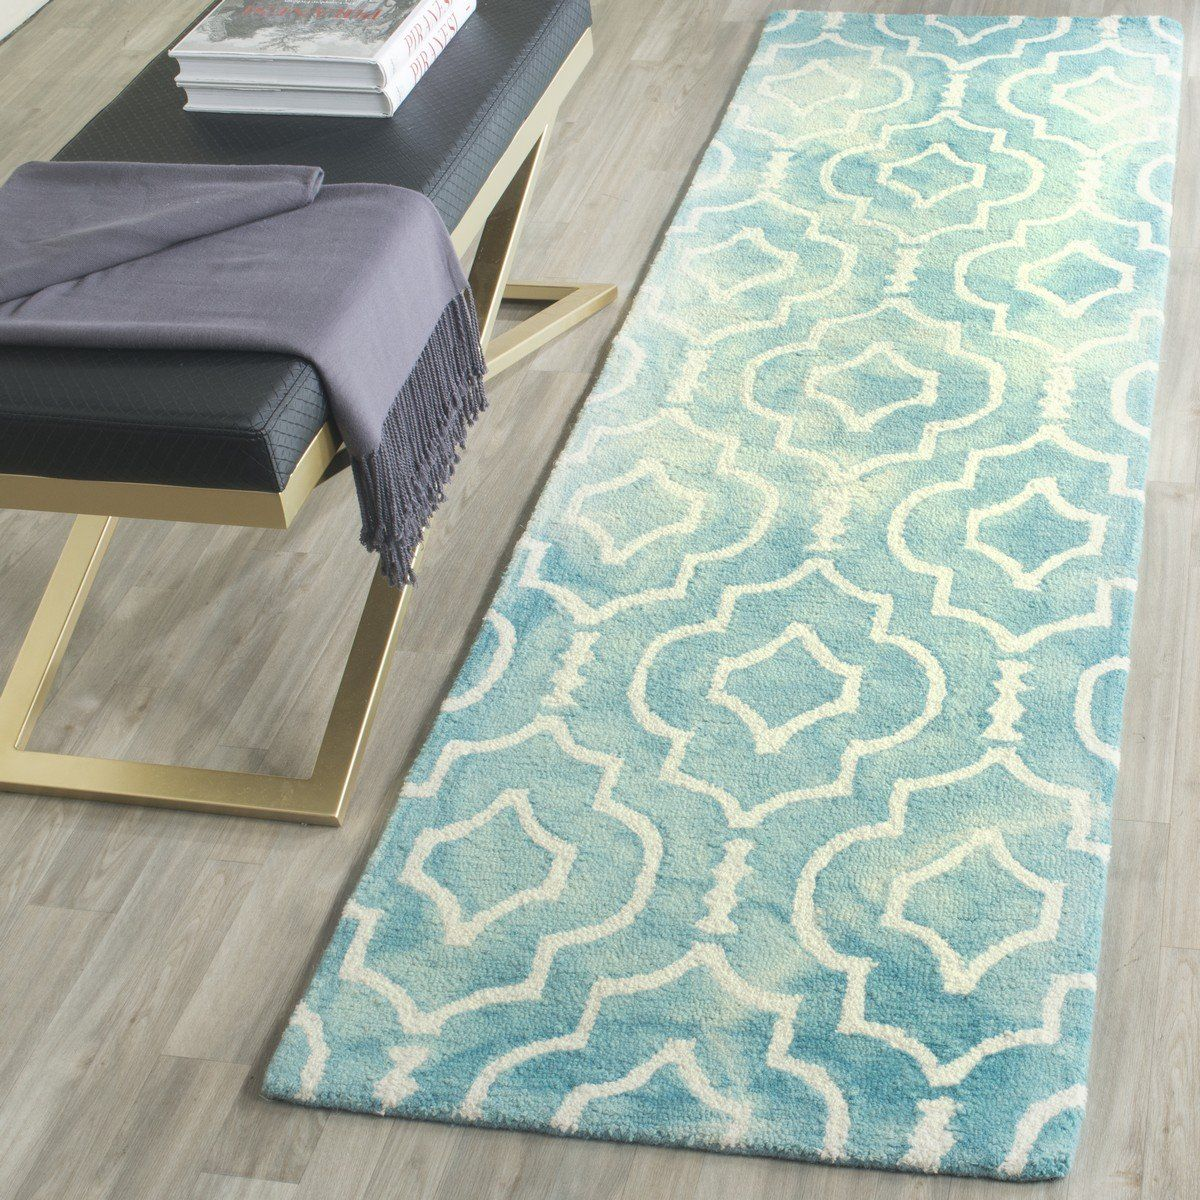 Safavieh Dip Dye Ddy538d Turquoise Ivory Rugs Colorful Rugs Washable Rugs